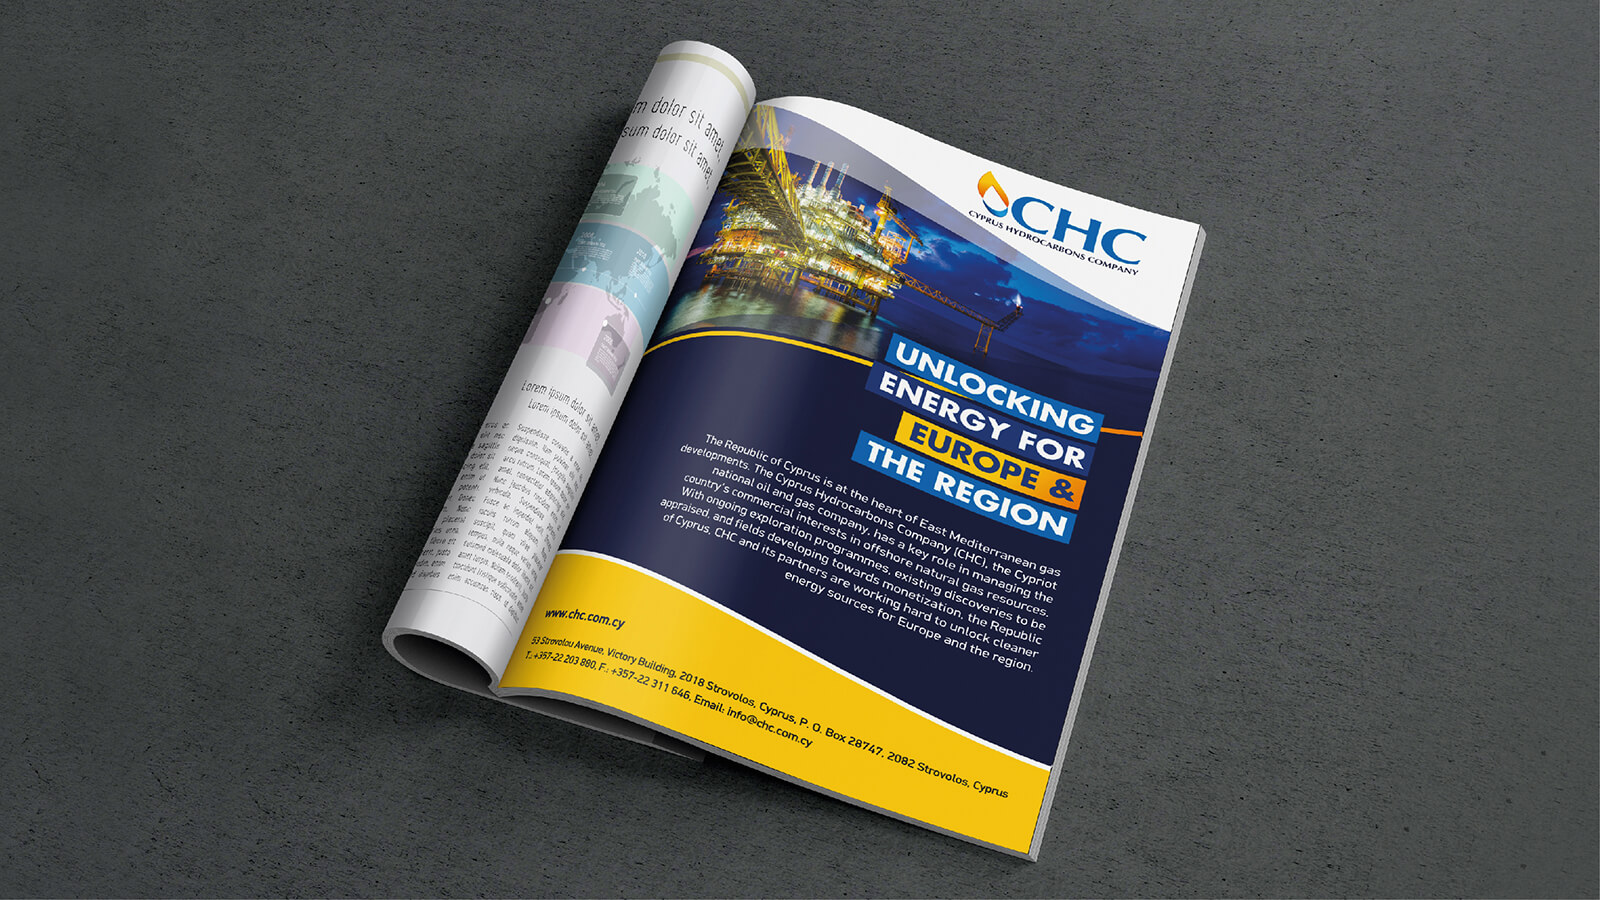 The Cyprus Hydrocarbons Company Magazine Advertising